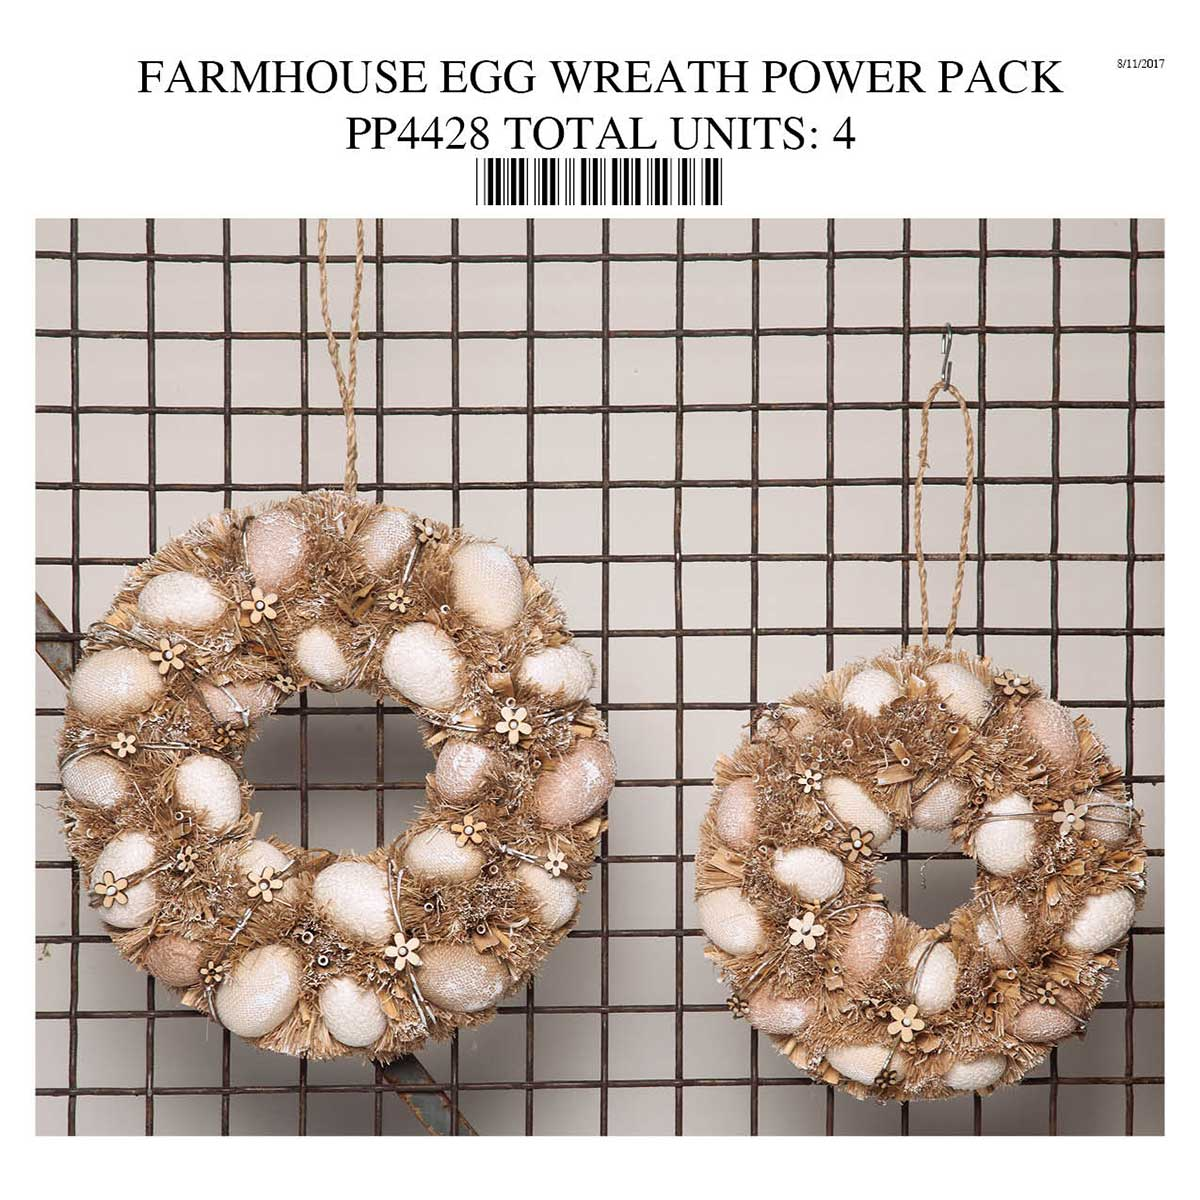 BARNYARD EGG WREATH POWER PACK PP4428